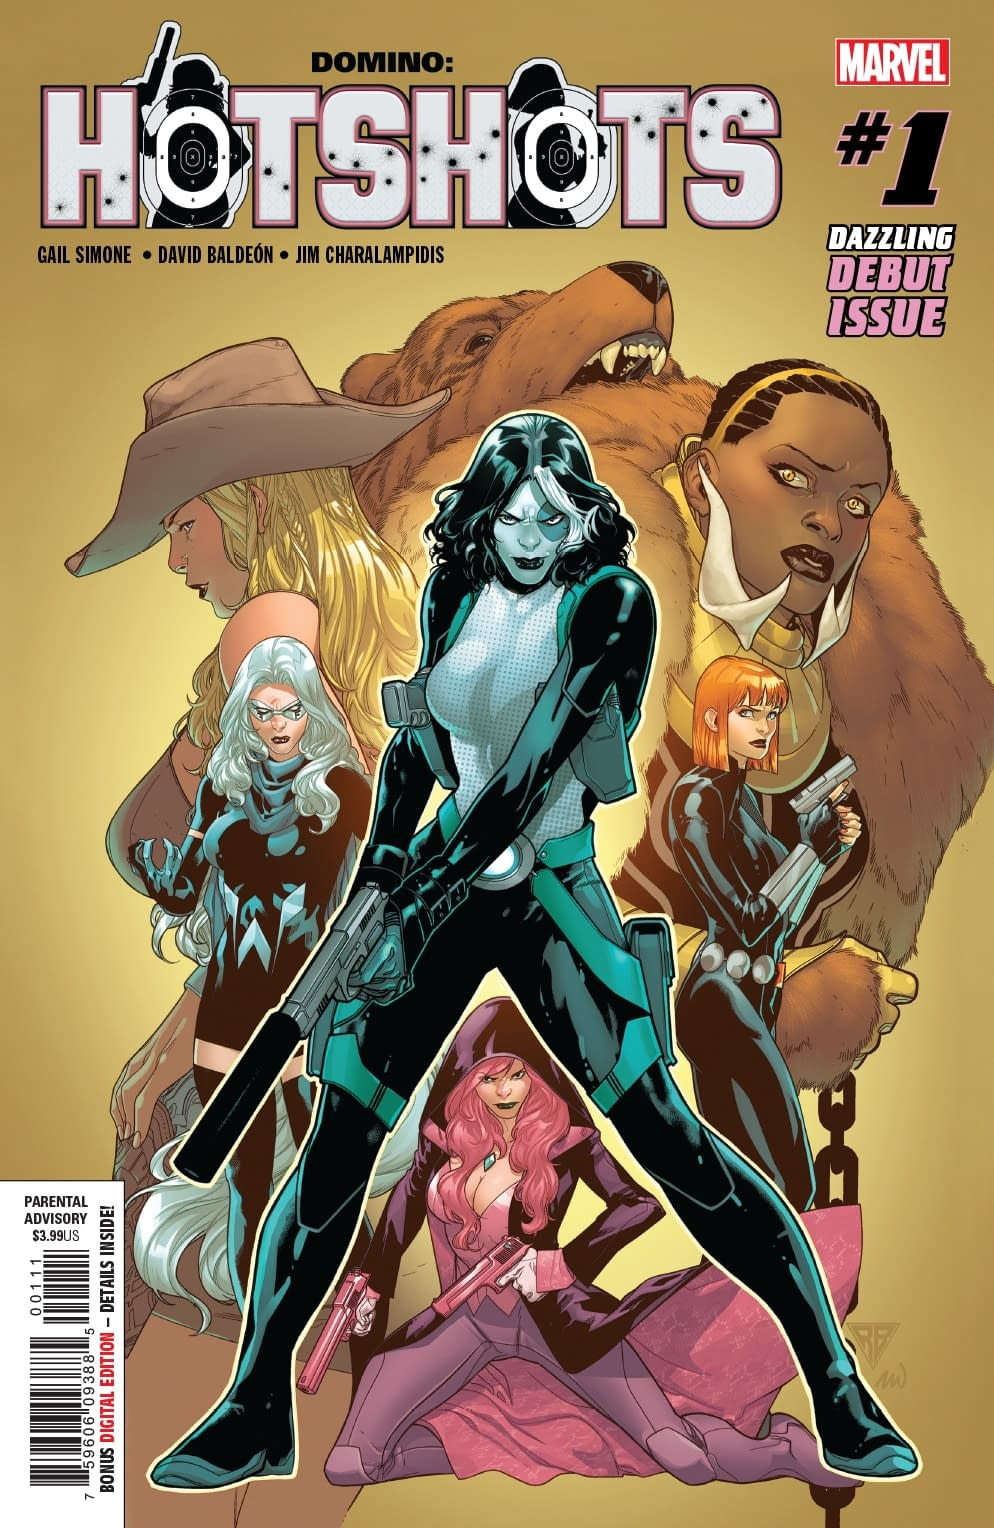 """Gail Simone Says We Could Get More Domino After Hotshots, the """"Most Efffed Up Thing"""" She's Ever Written"""